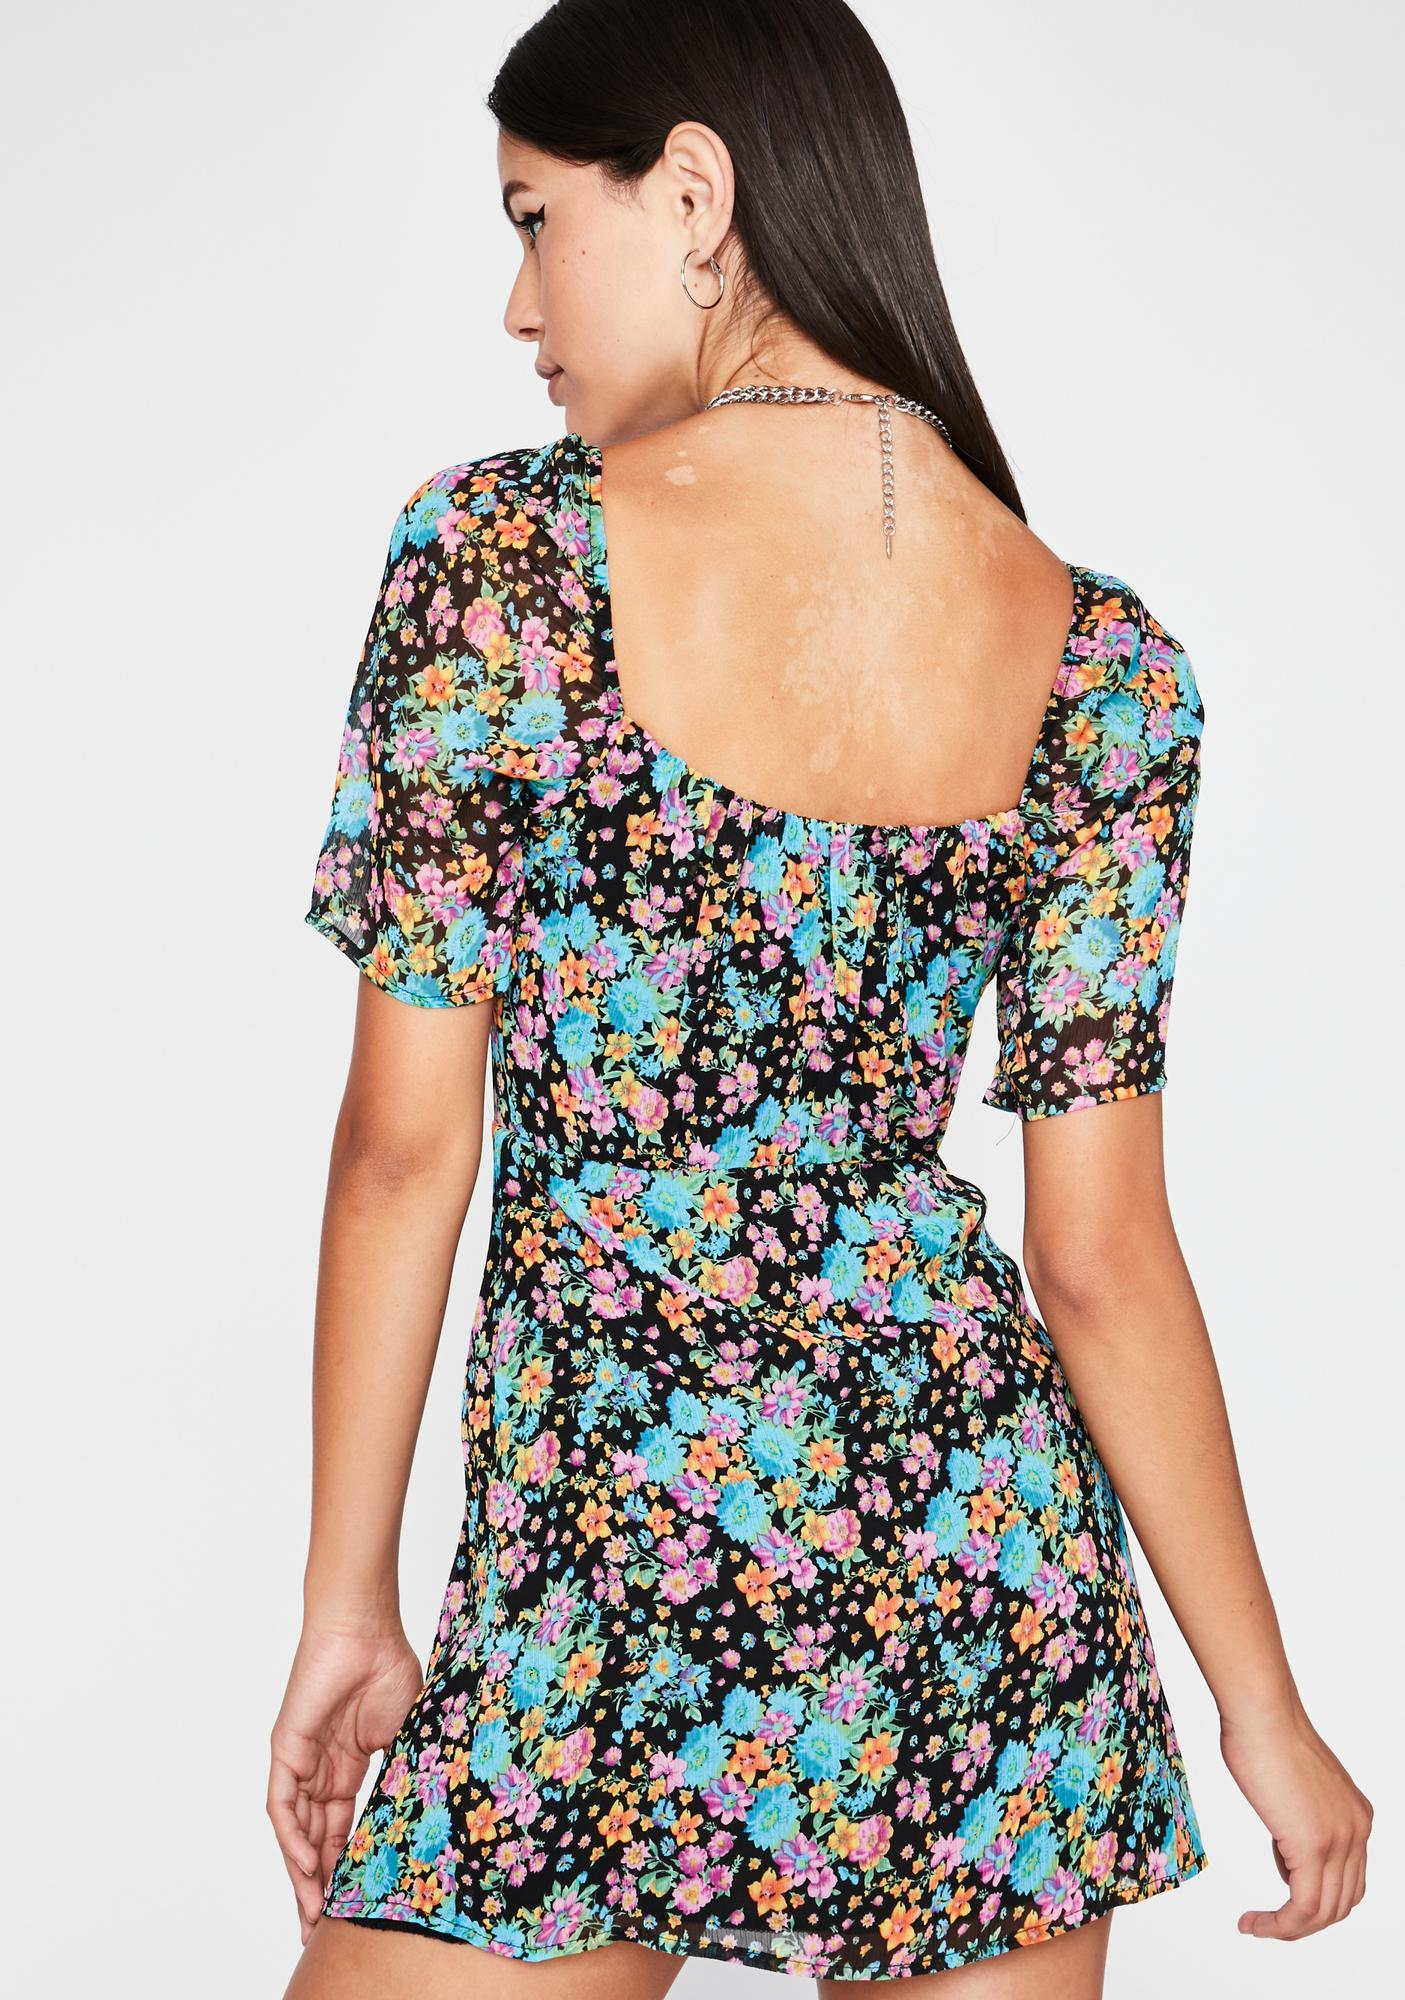 Free Spirited Bohemian Floral Sundress